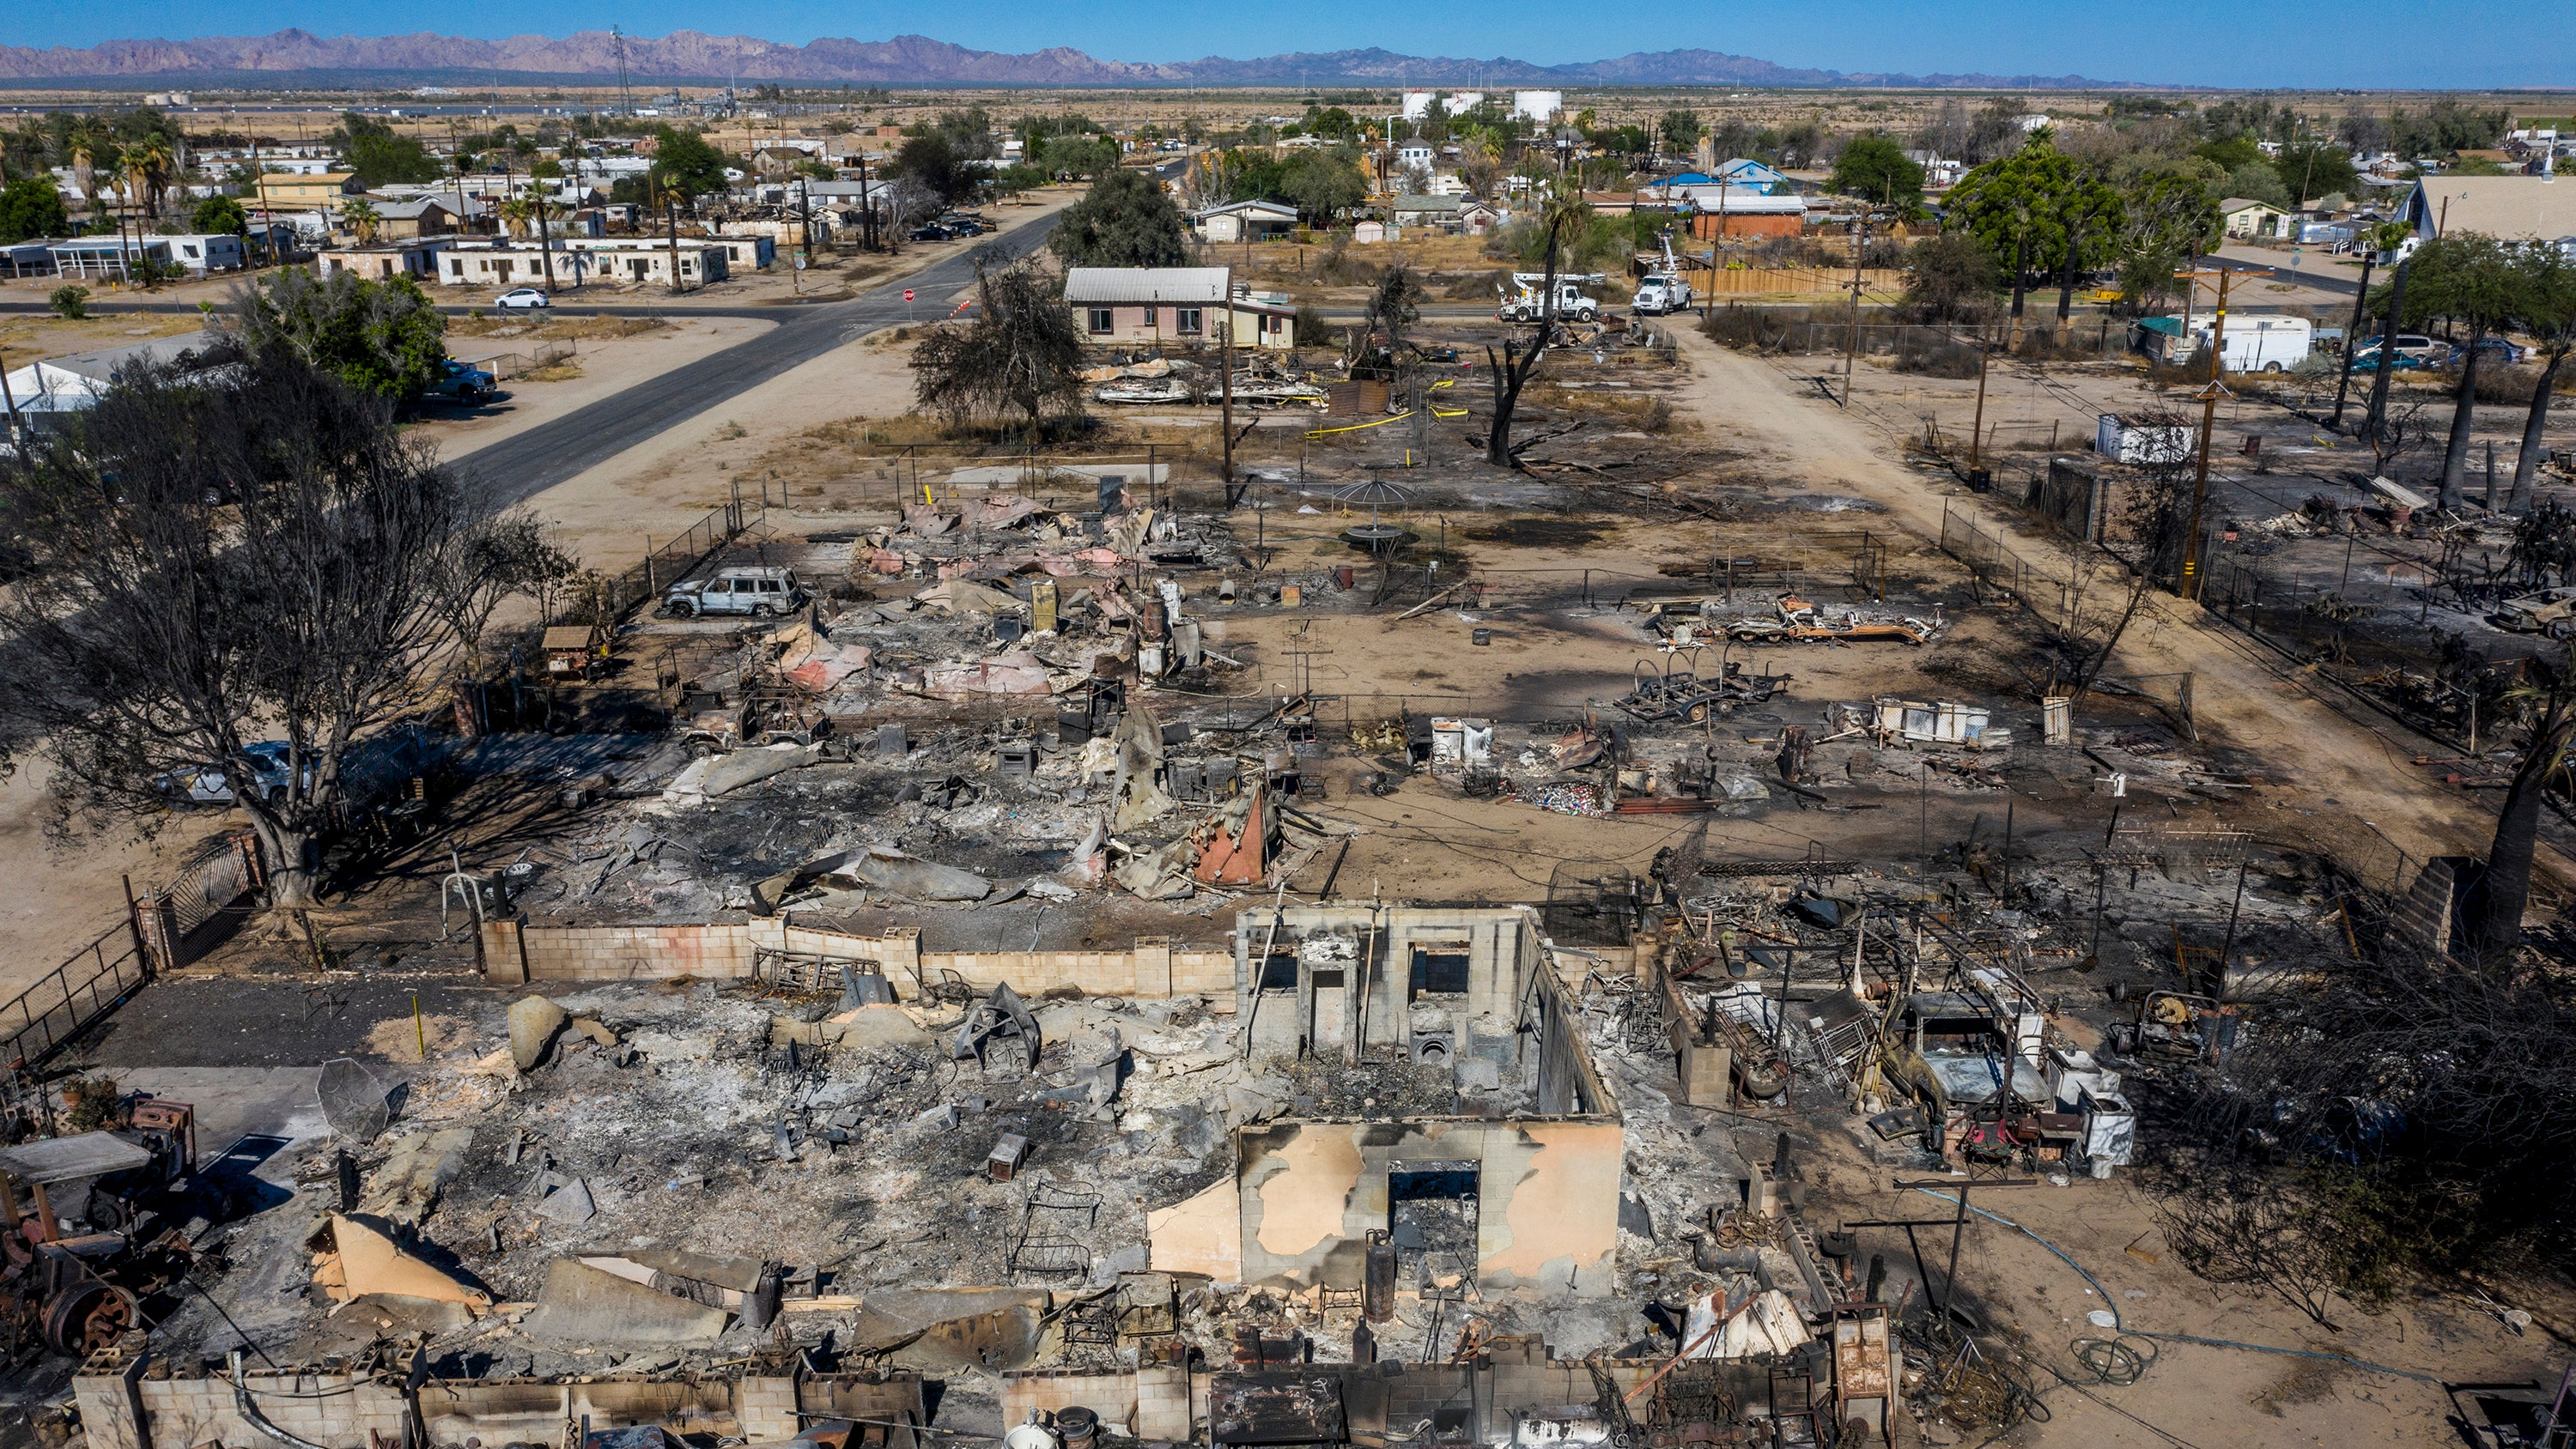 Wildfire Destroys 40 Homes in Southern California (PHOTOS)